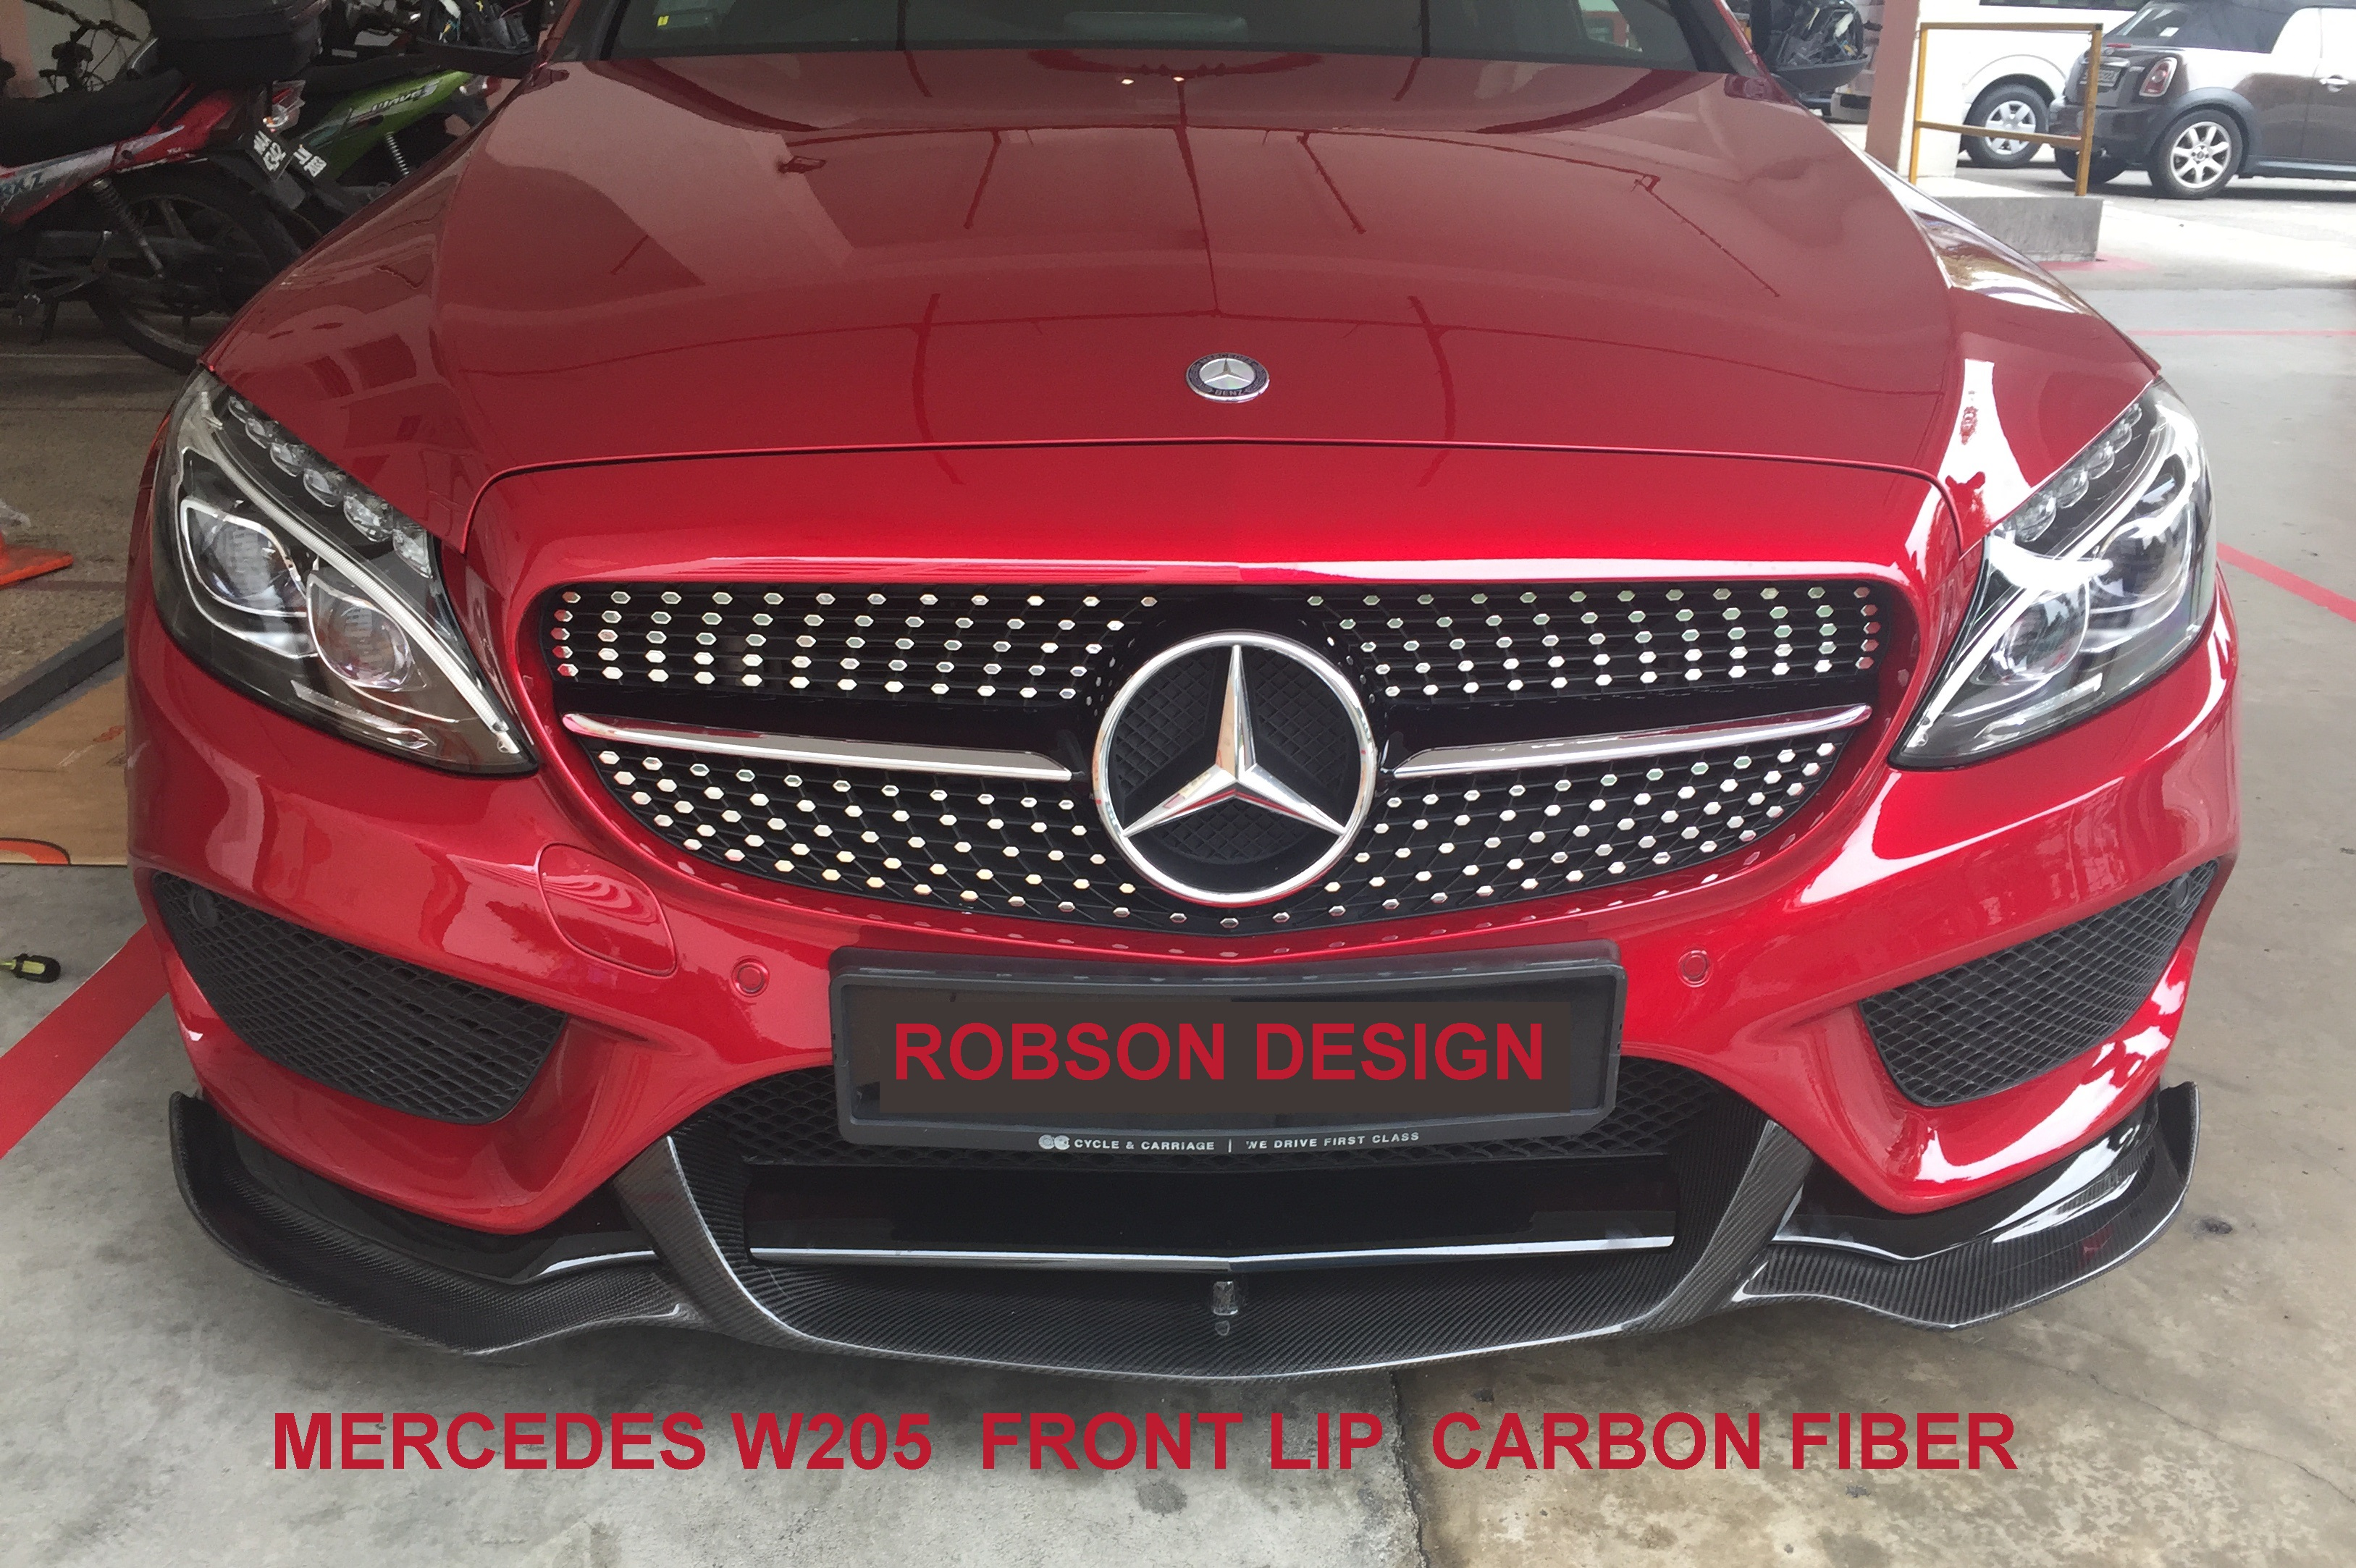 Mercedes benz c class c63 w205 amg front lip robson for Mercedes benz c300 accessories